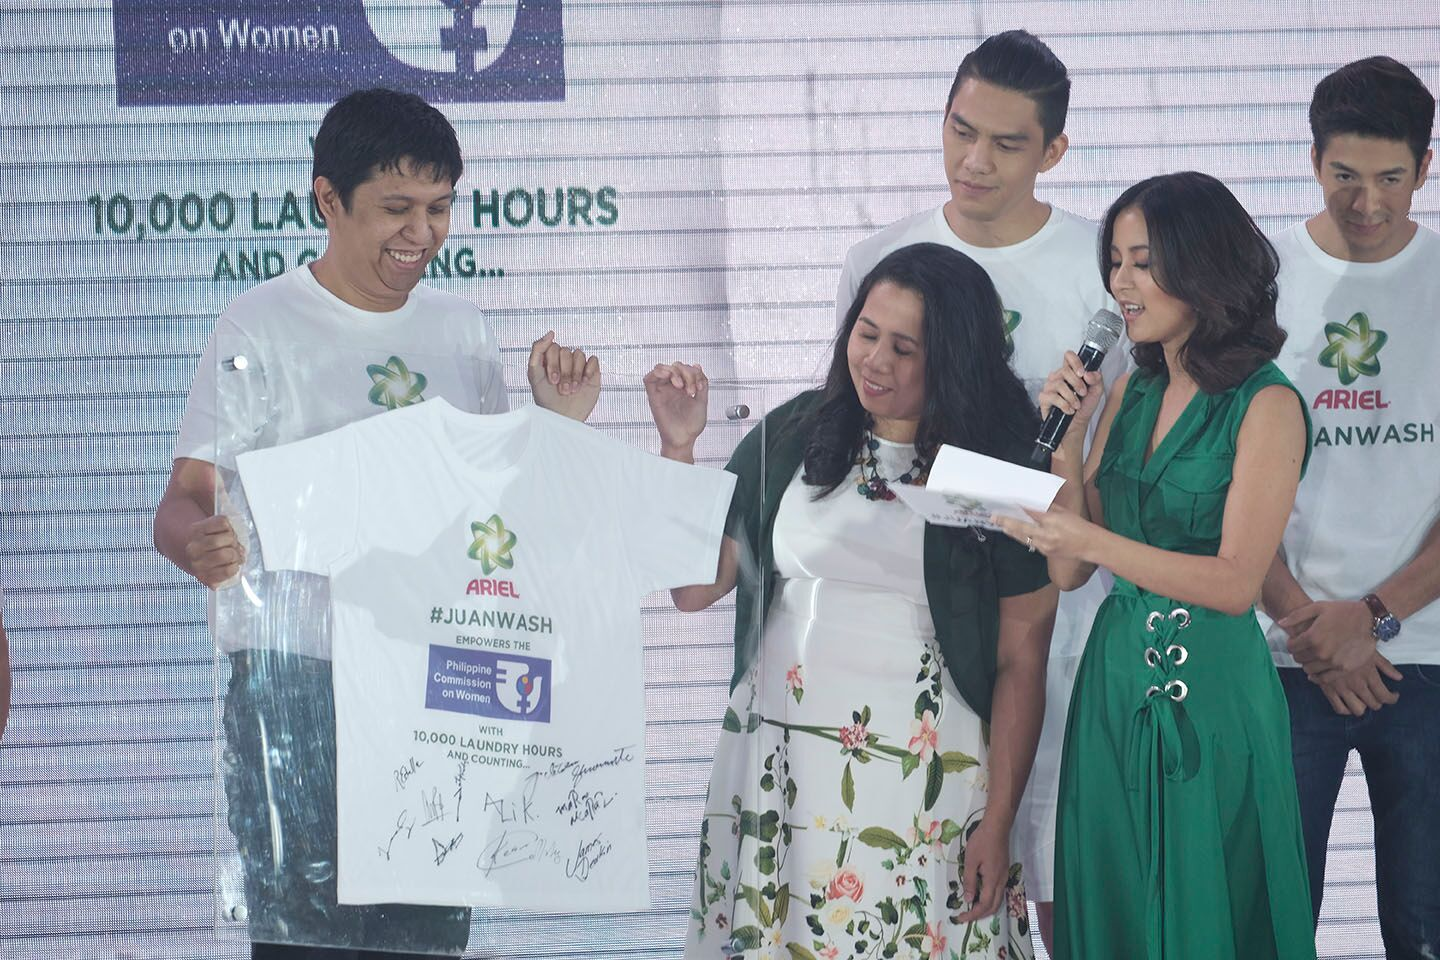 Ceremonial Handover of 10,000 laundry hours to PCW